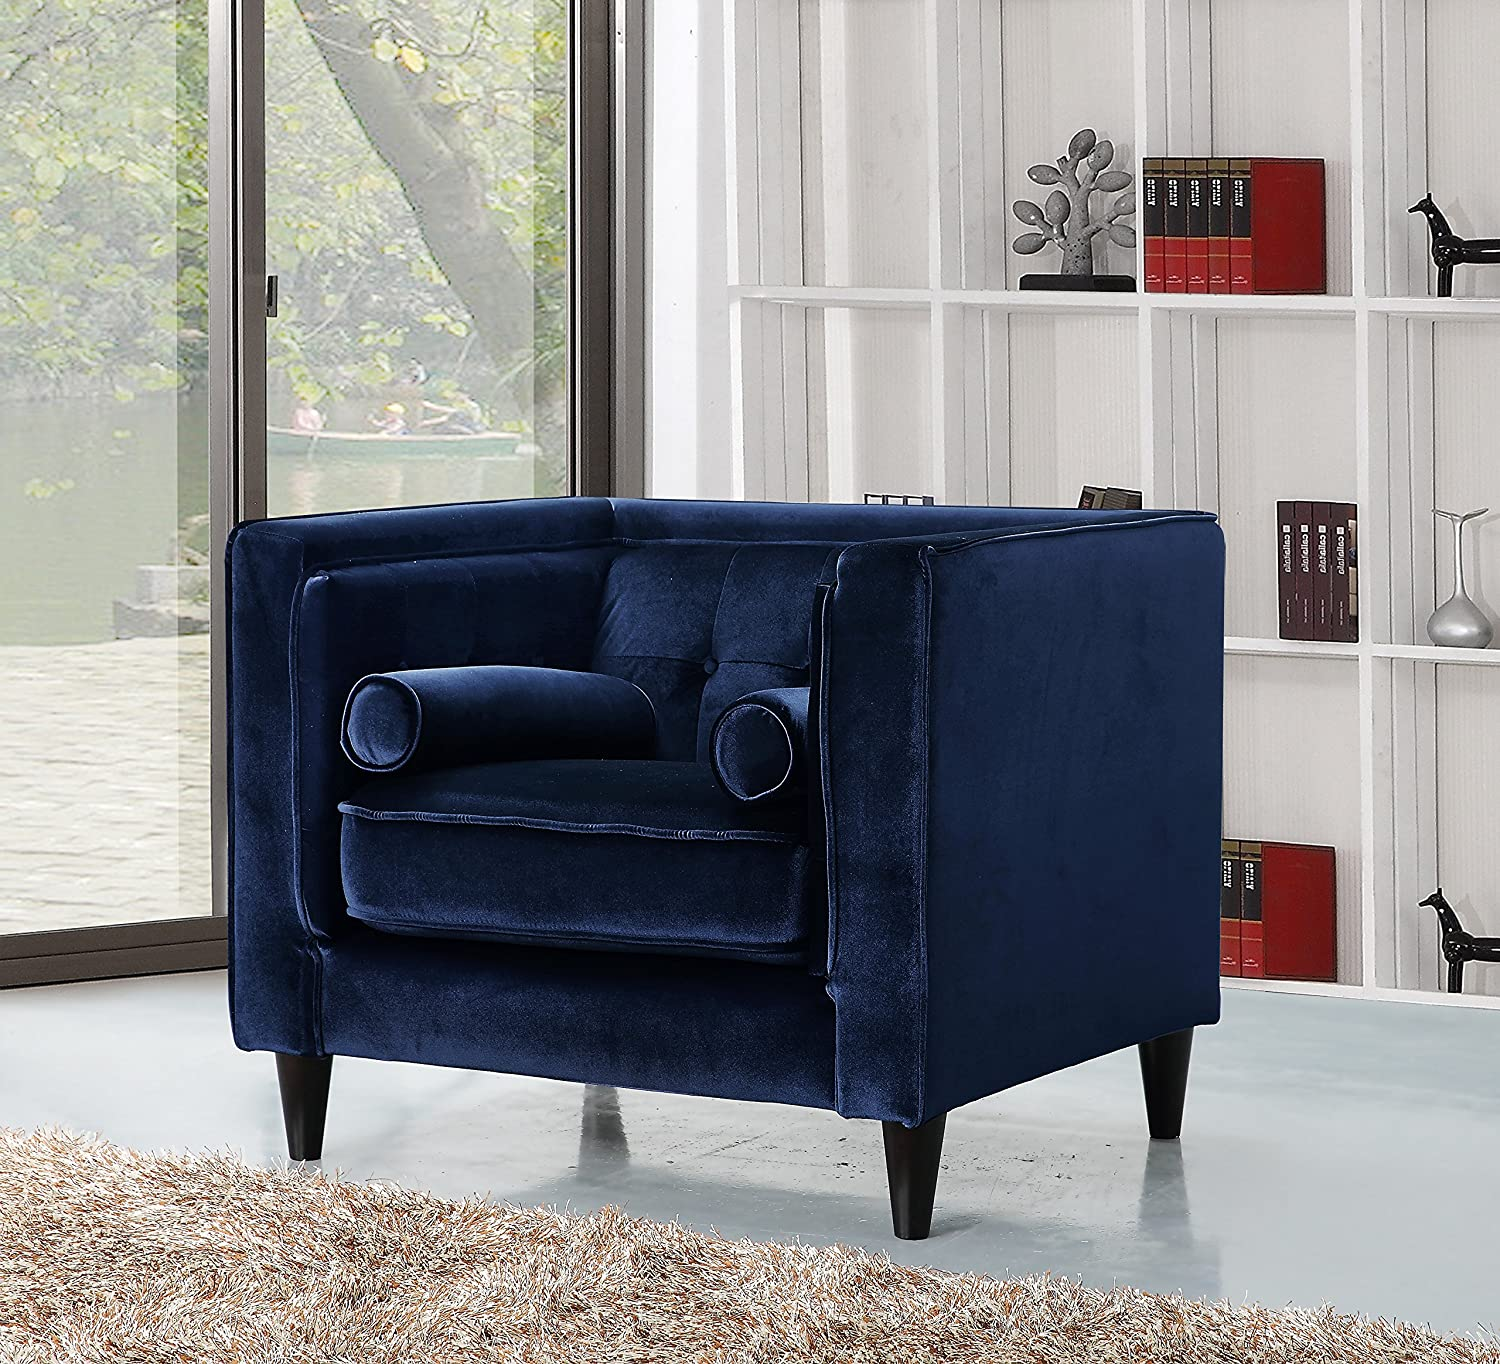 Muebles Taor Sl - Amazon Com Meridian Furniture 642gry C Taylor Button Tufted [mjhdah]https://images-na.ssl-images-amazon.com/images/I/716ZS07l50L._SL1500_.jpg